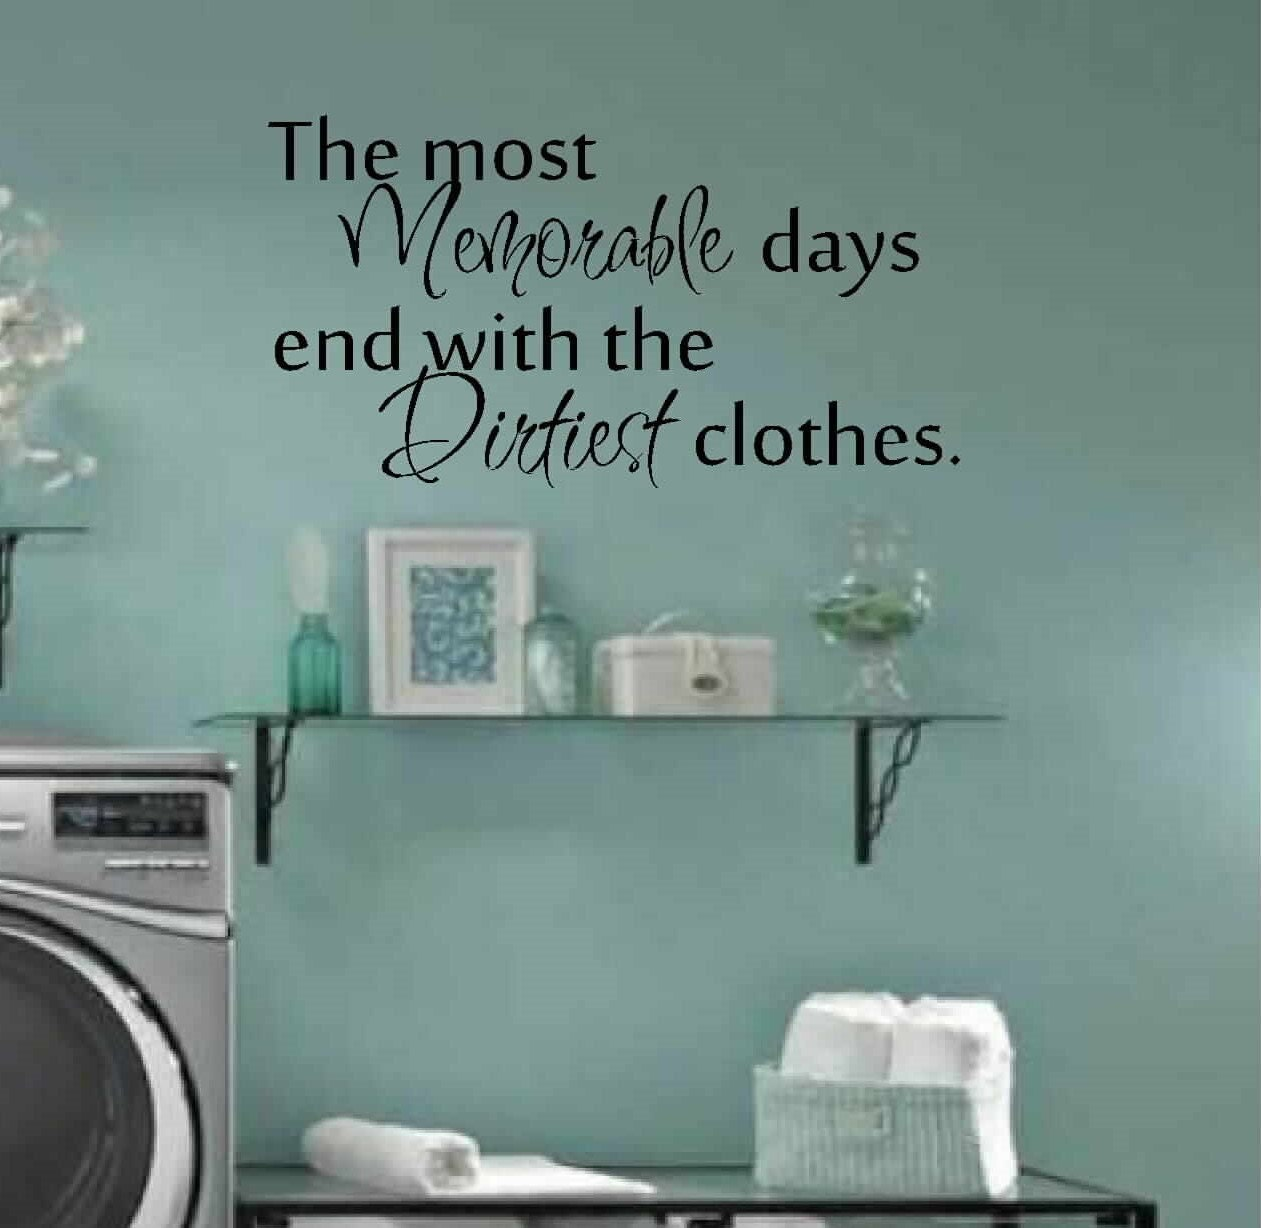 Laundry Wall Decor Laundry Room Decor Wall Art Matt Vinyl Decal Laundry